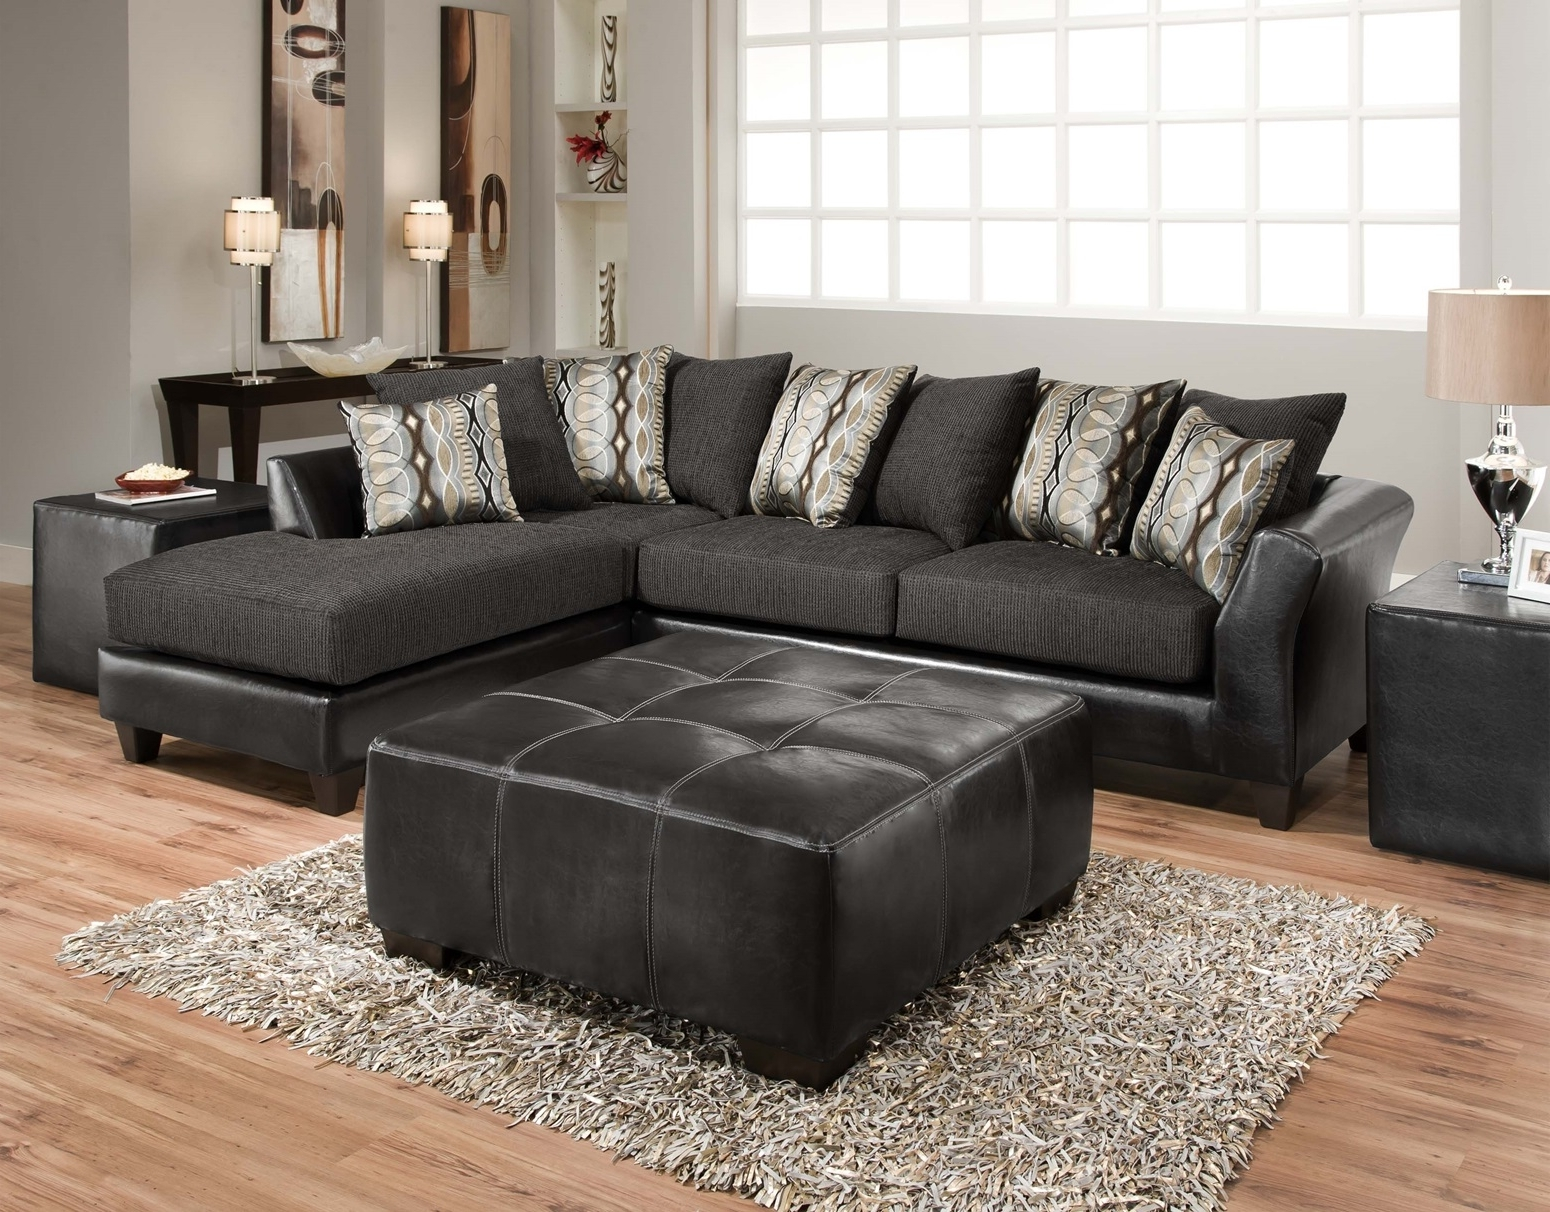 Living Room: Simple Sectional With Chaise For Small Space Living Inside Most Recent Charcoal Sectionals With Chaise (View 7 of 15)